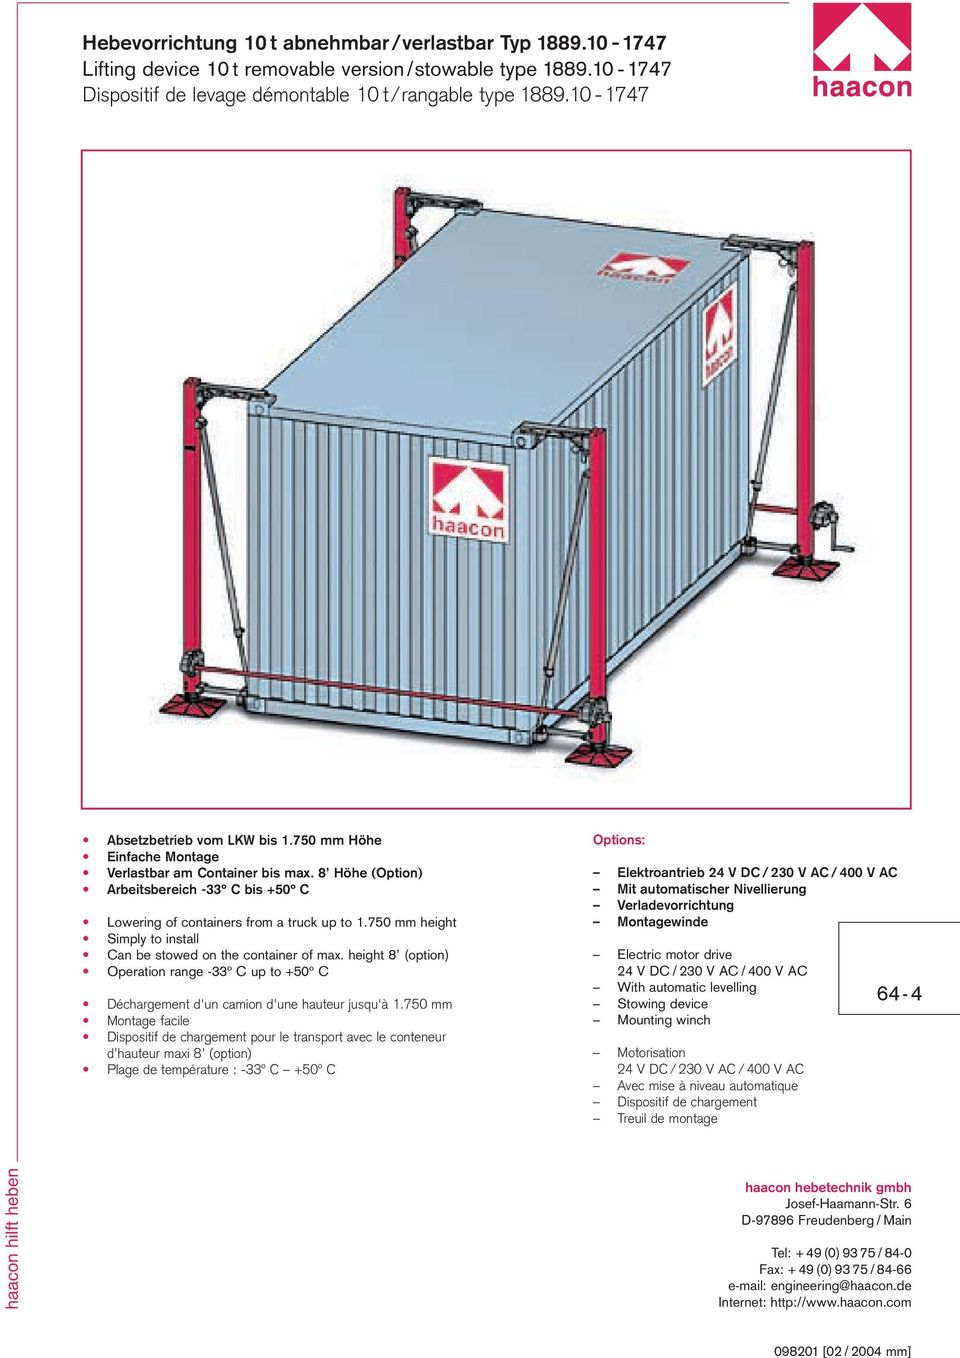 750 mm height Simply to install Can be stowed on the container of max. height 8 (option) Operation range -33º C up to +50º C Déchargement d'un camion d'une hauteur jusqu'à 1.